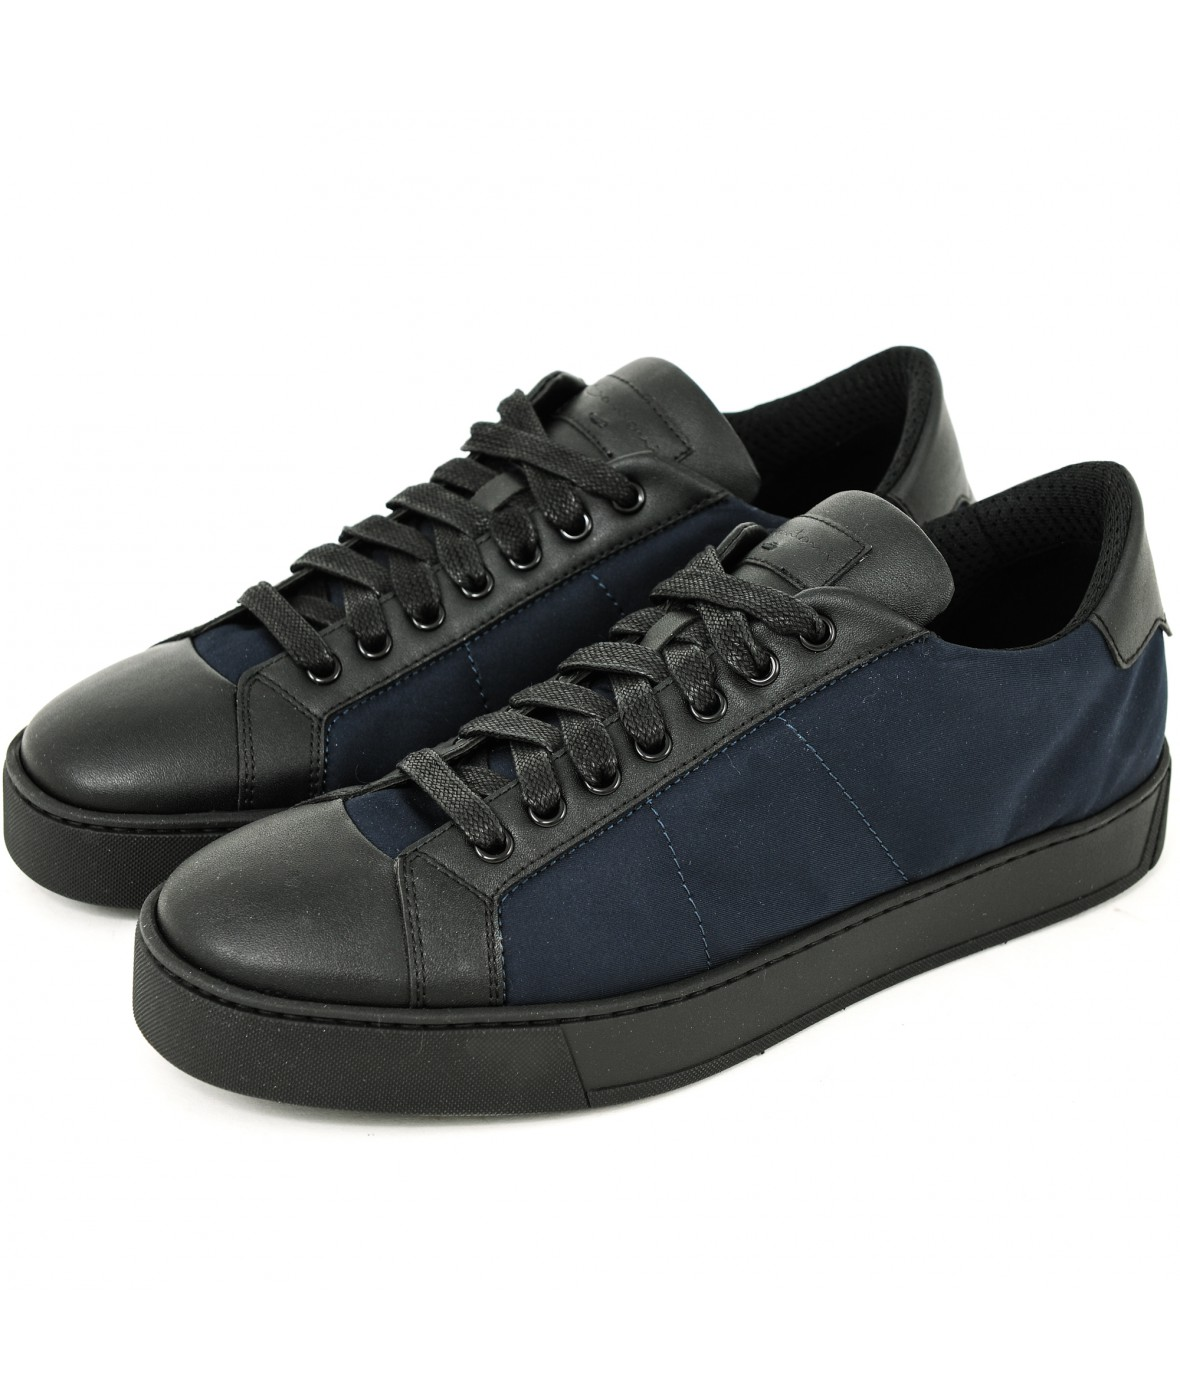 Santoni Rethink low  dark blue (33413)